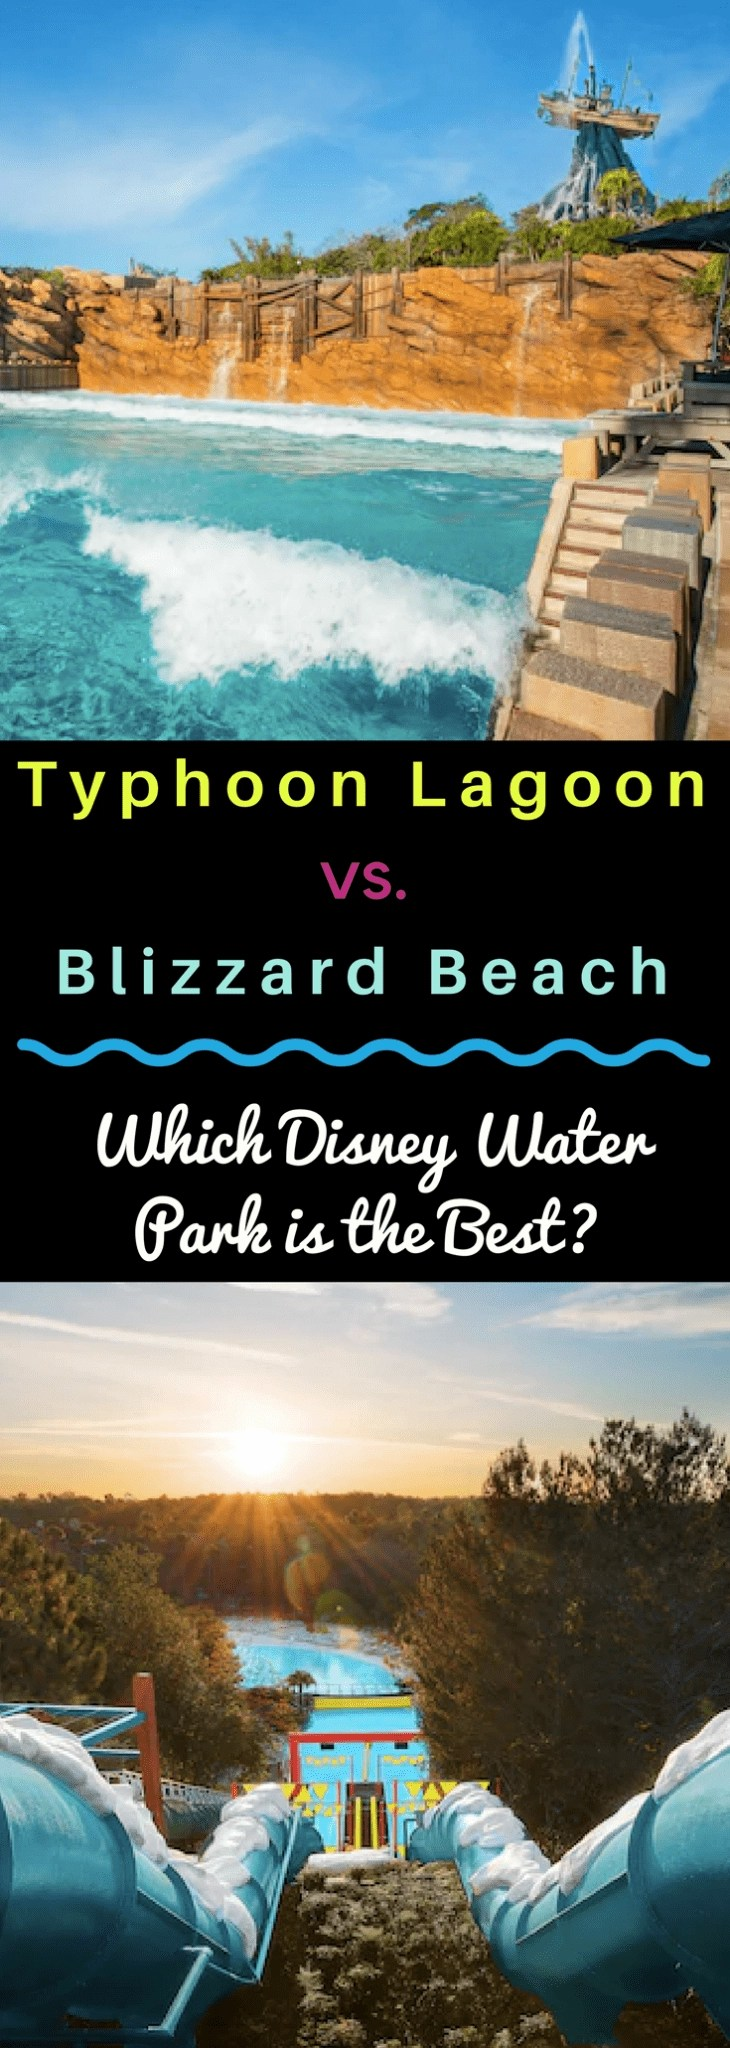 Trying to decide which Disney Waterpark to visit. Take a look at our breakdown of which Disney Water Park is the best. Typhoon Lagoon vs. Blizzard Beach. #disneyworld #disney #disneywaterparks #waterparks